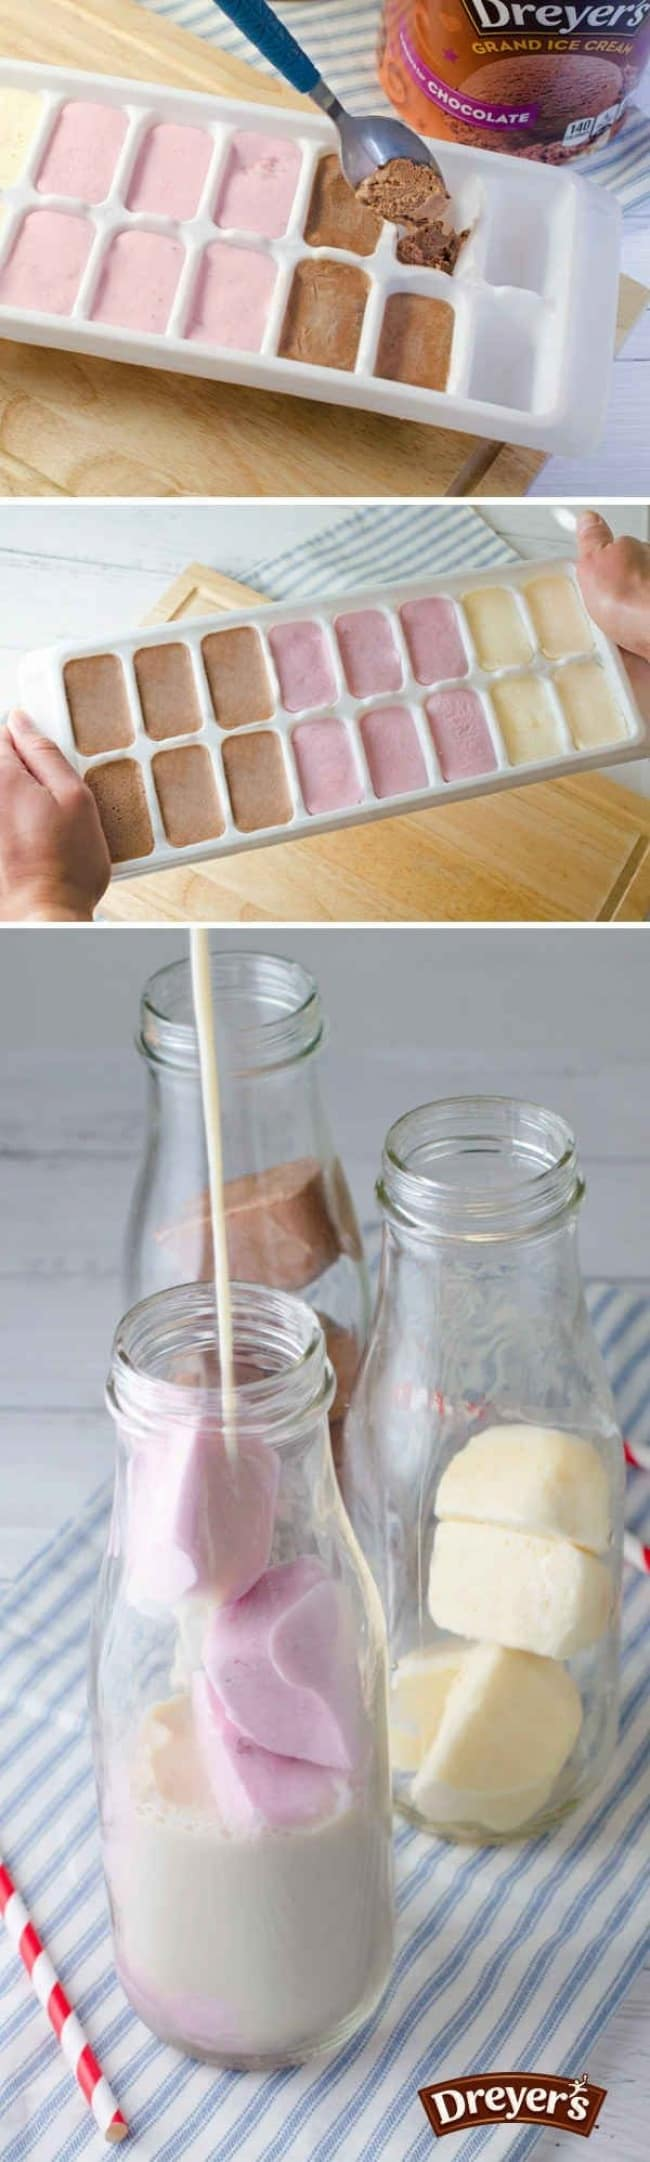 Ways To Use Ice Cube Tray ice cream